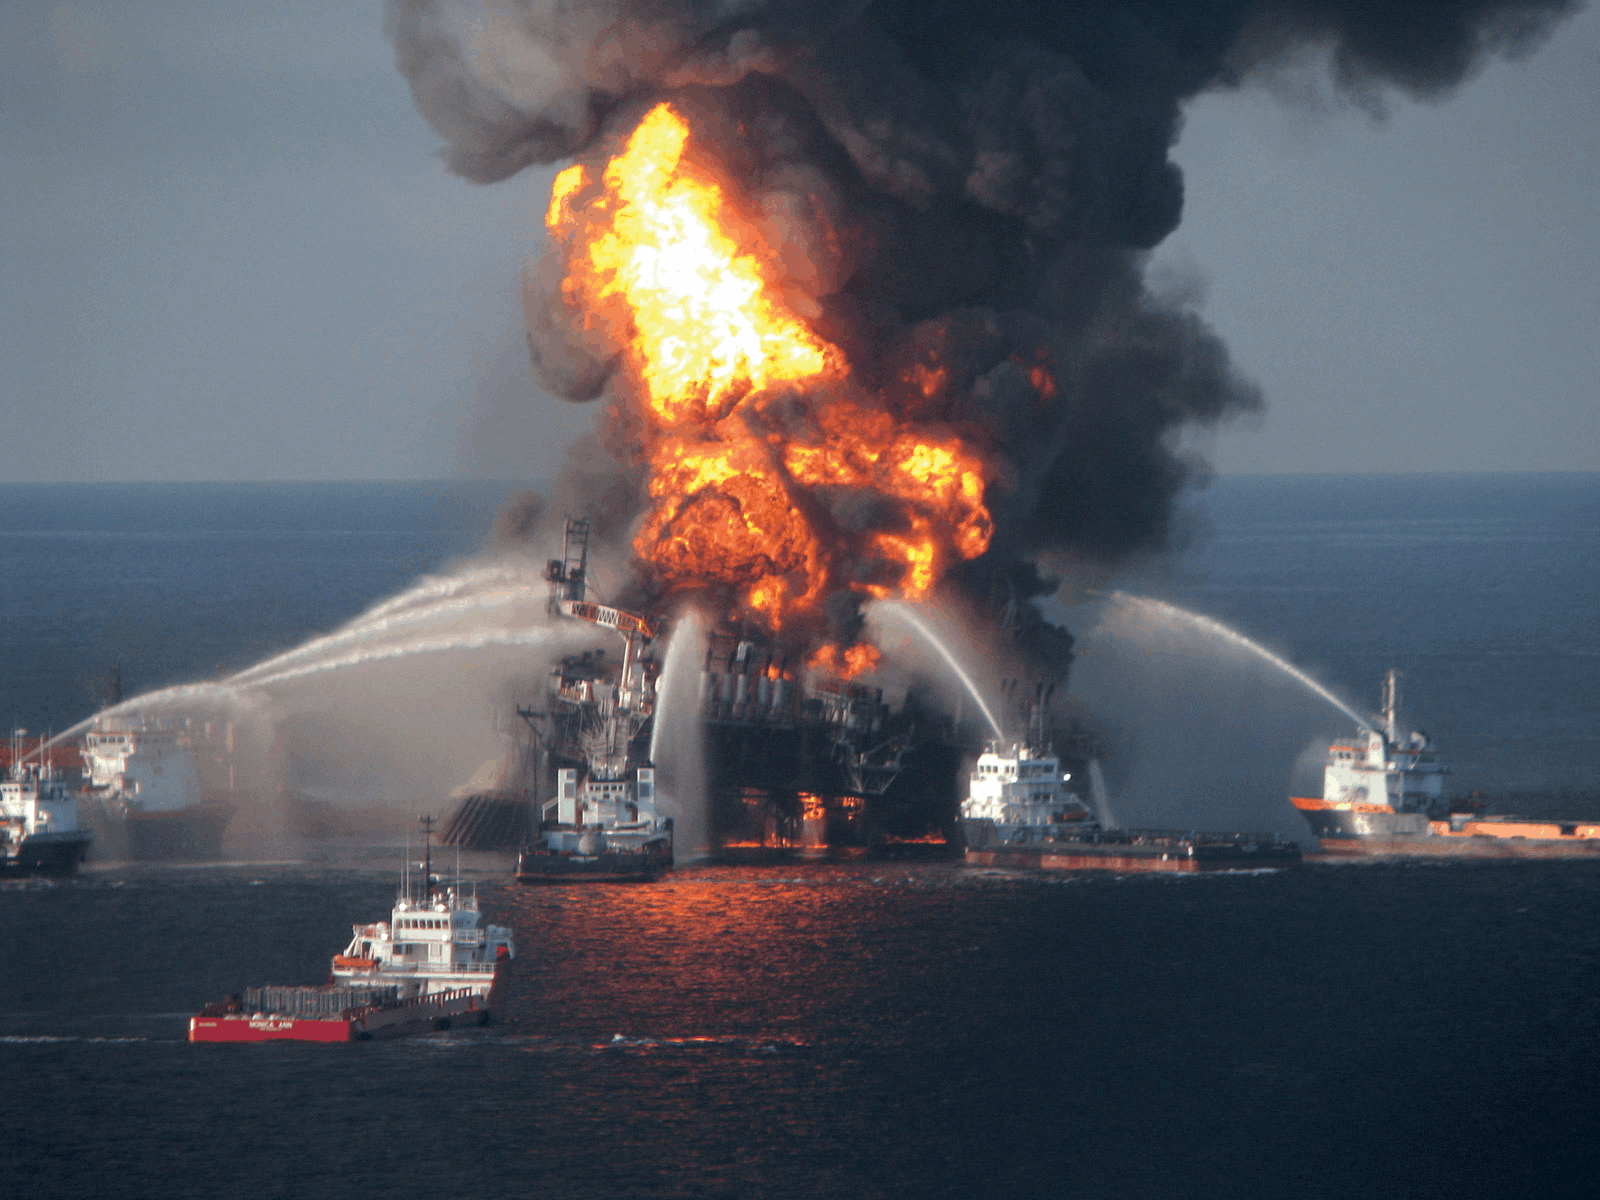 Image of BP Oil's Deepwater Horizon spill with a rig on fire at sea and shits spraying water onto the fire and black smoke